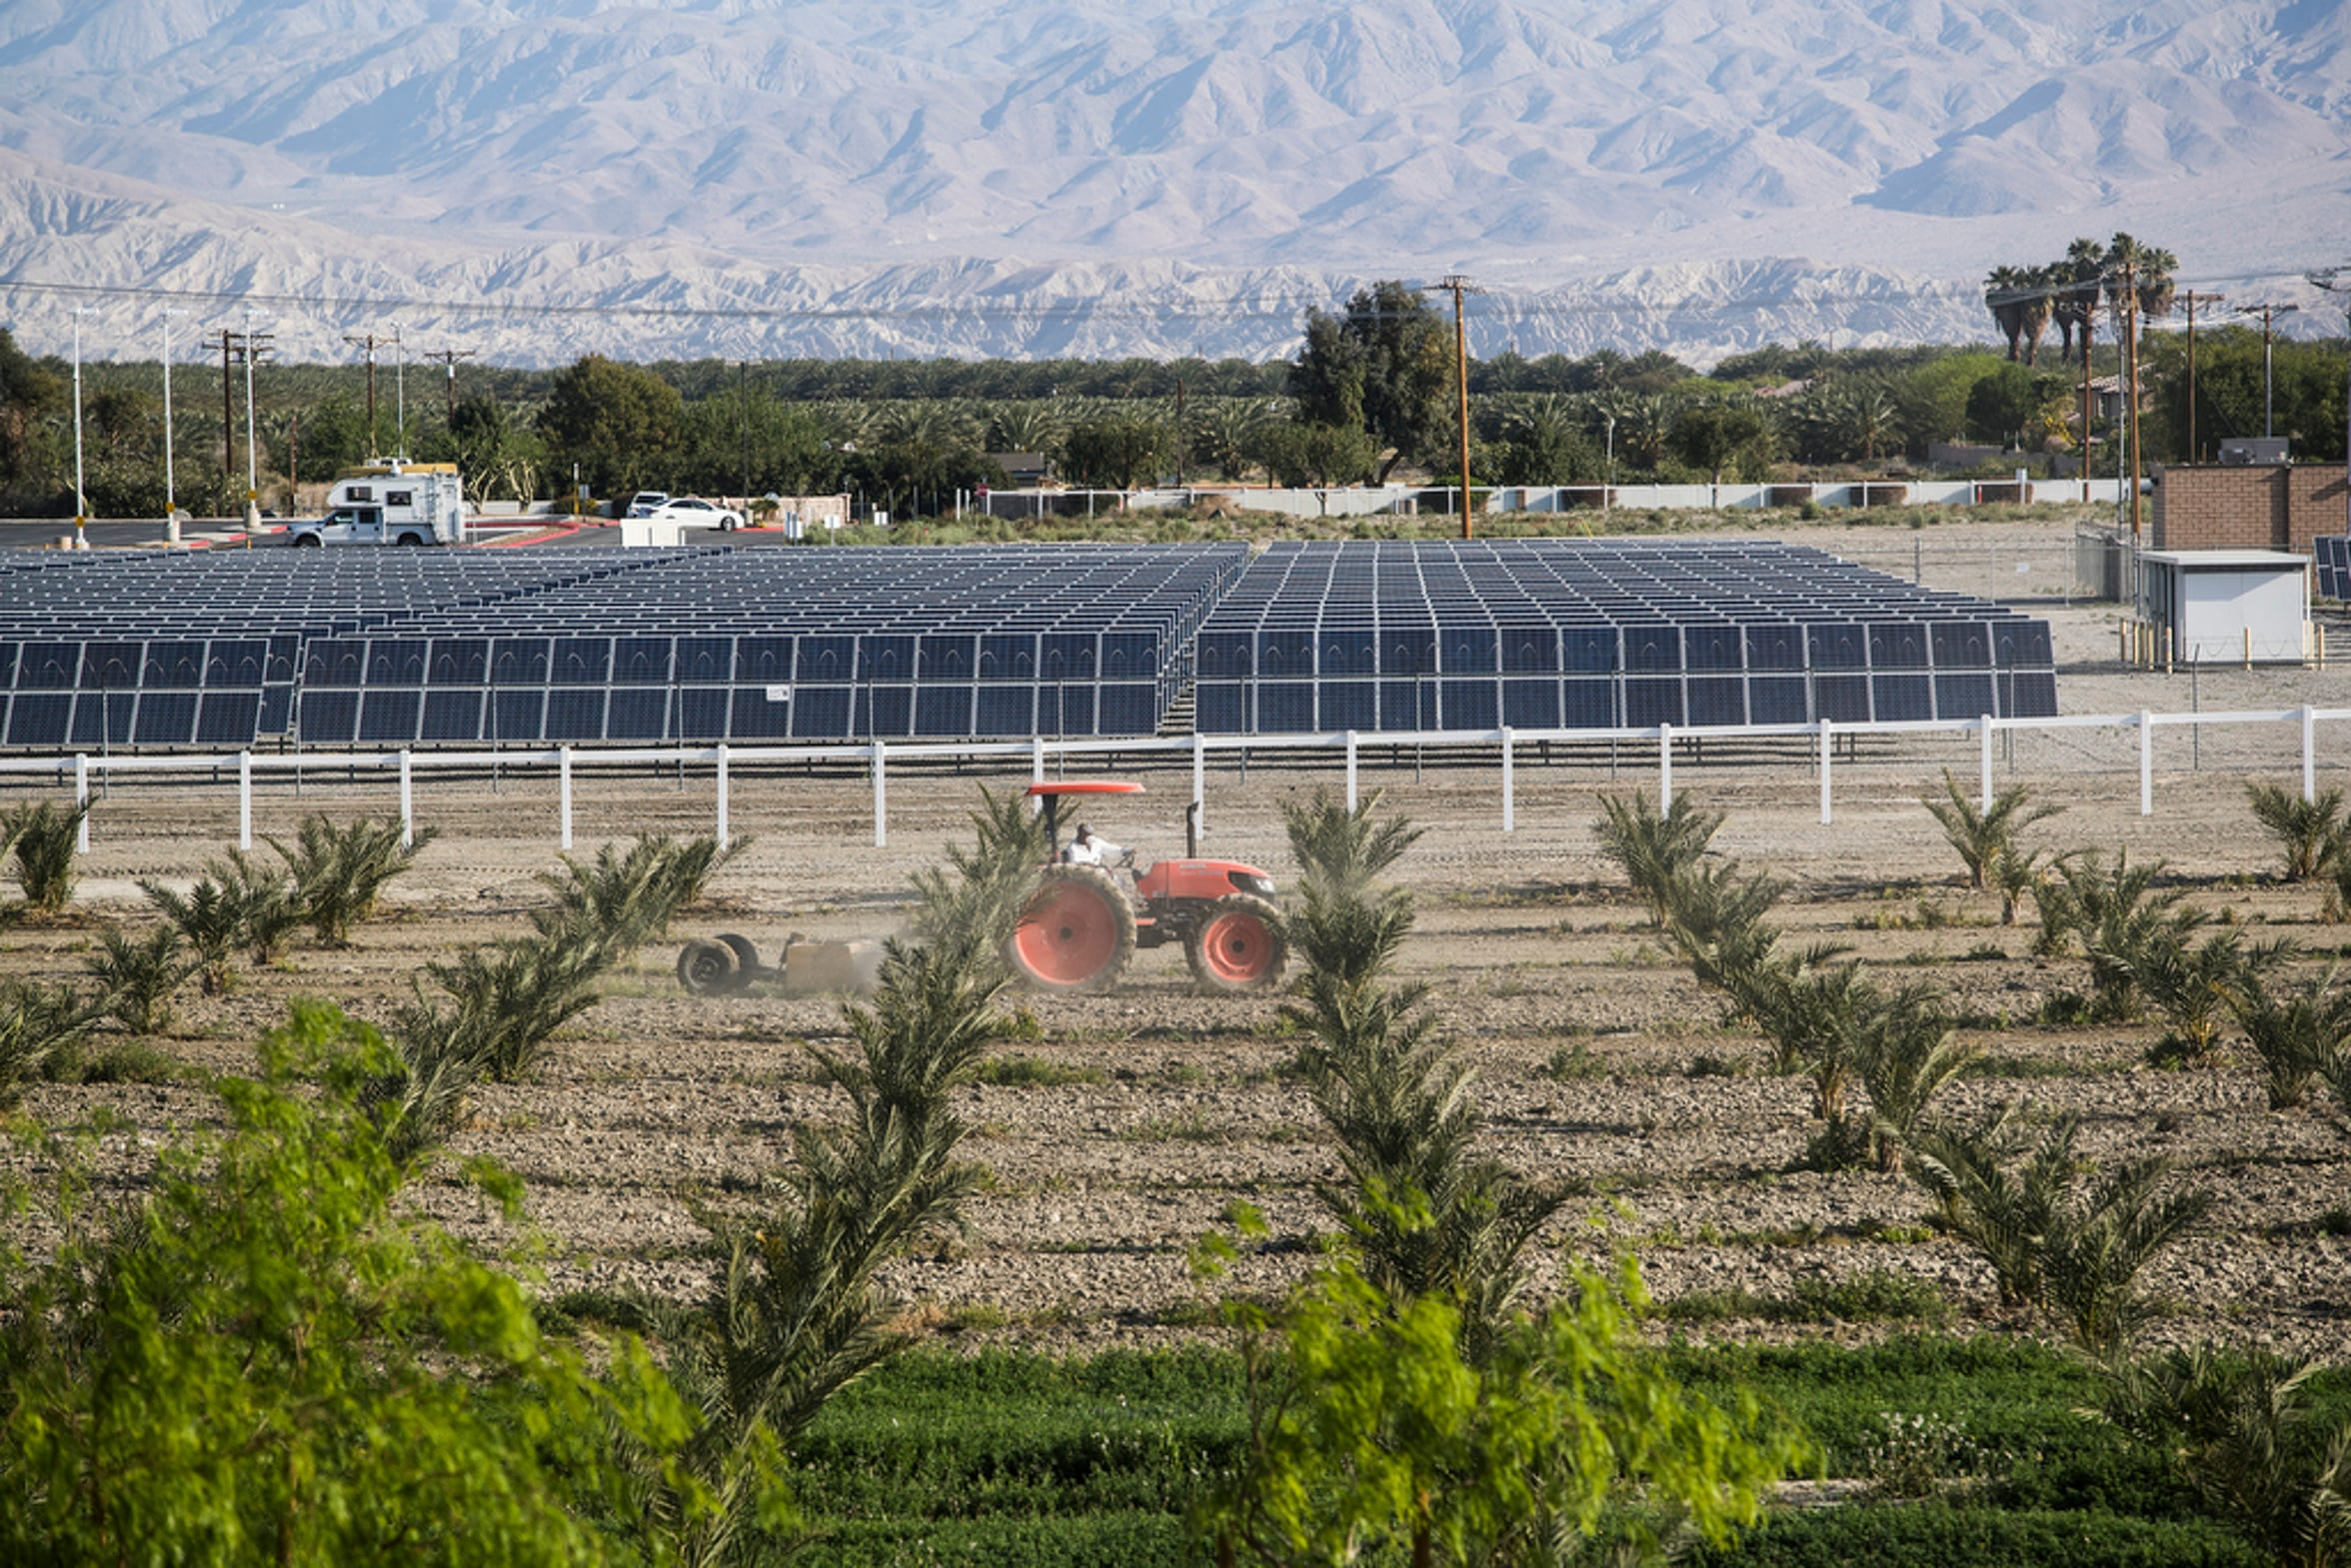 The Augustines in 2008 opened the first phase of its 3-megawatt solar farm, which helps power its 30,000-square foot casino. Rows of palms are part of the 33-acre organic farm the tribe is preparing to open in the coming months.